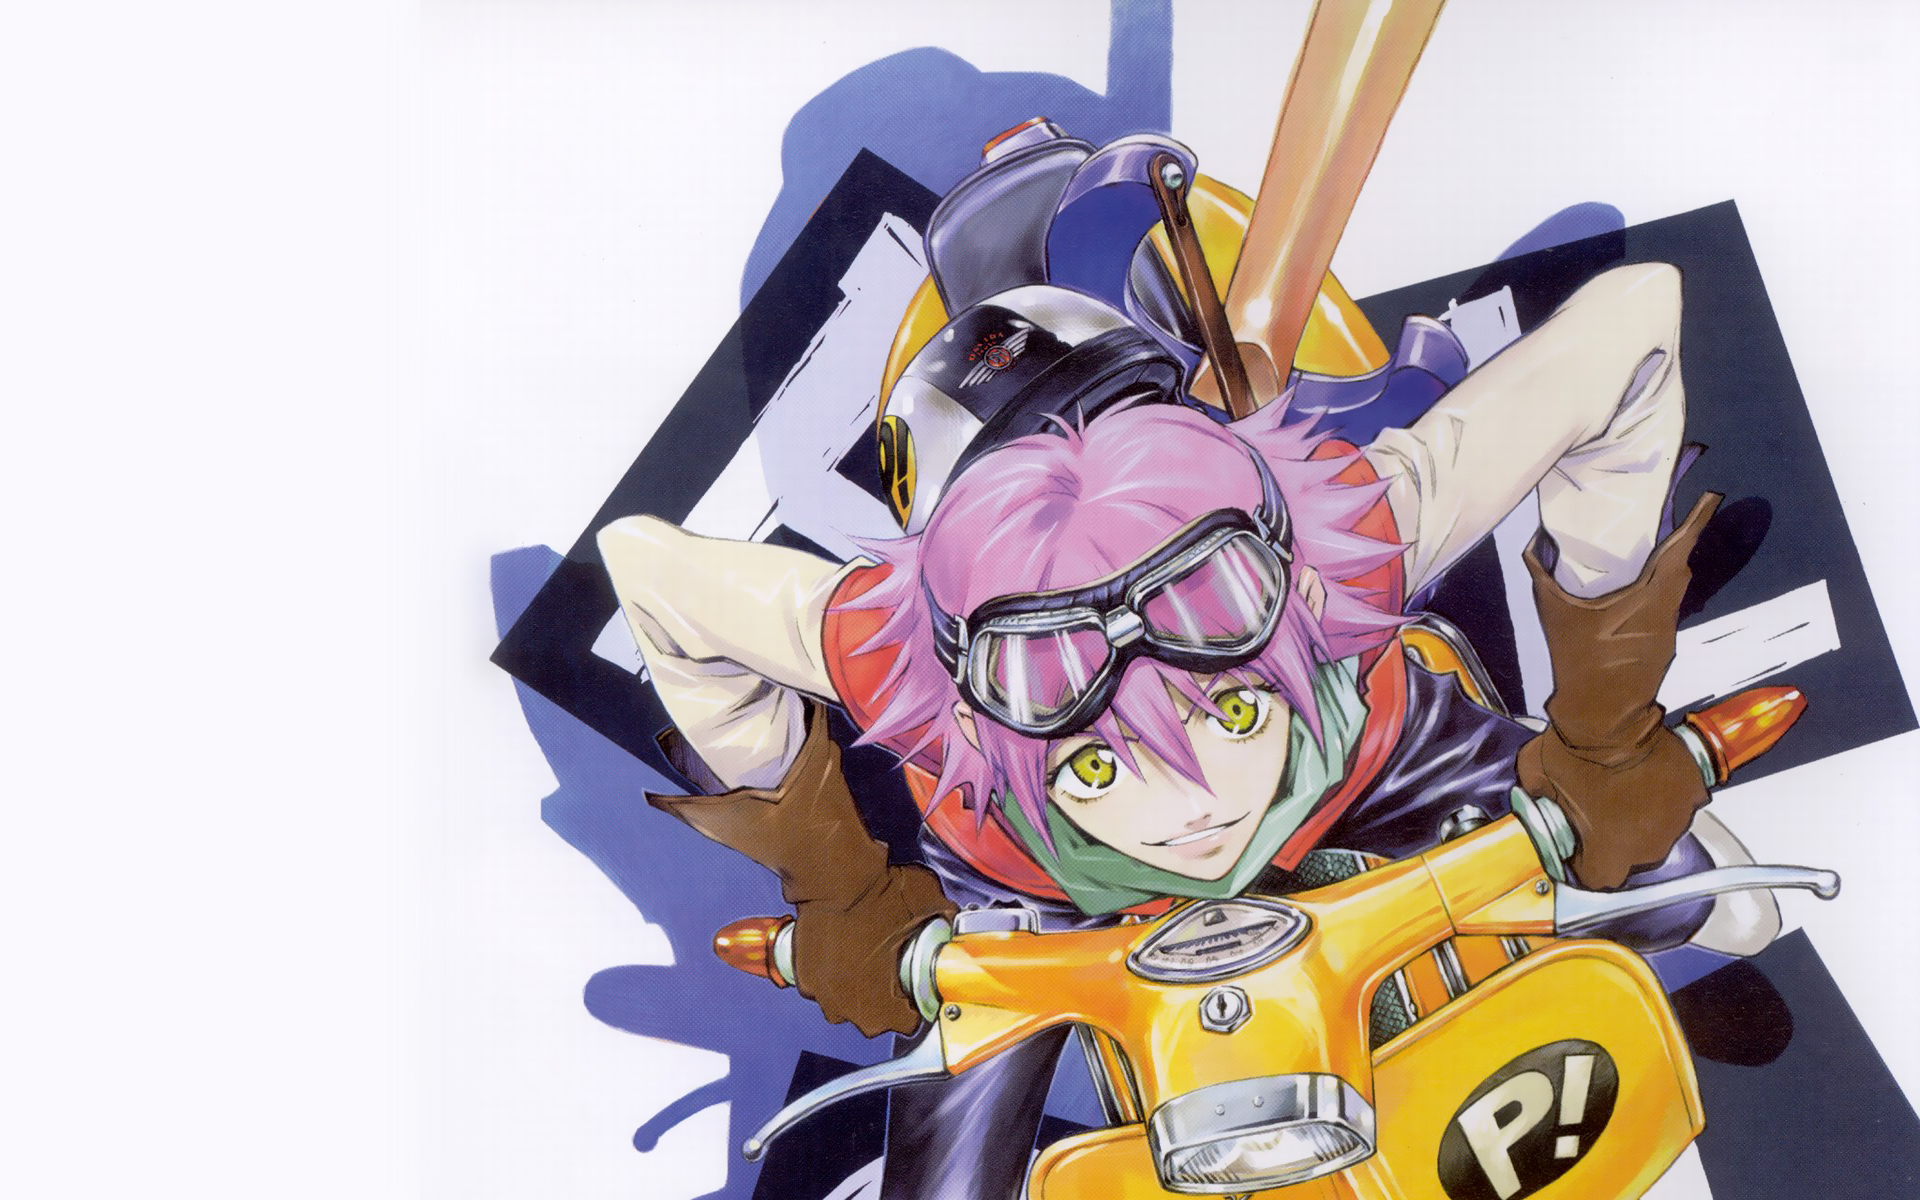 pants, gloves, FLCL Fooly Cooly, shadows, vespa, goggles, pink hair, short hair, yellow eyes, instruments, guitars, Haruhara Haruko, smiling, helmets, simple background, white background, bangs - desktop wallpaper